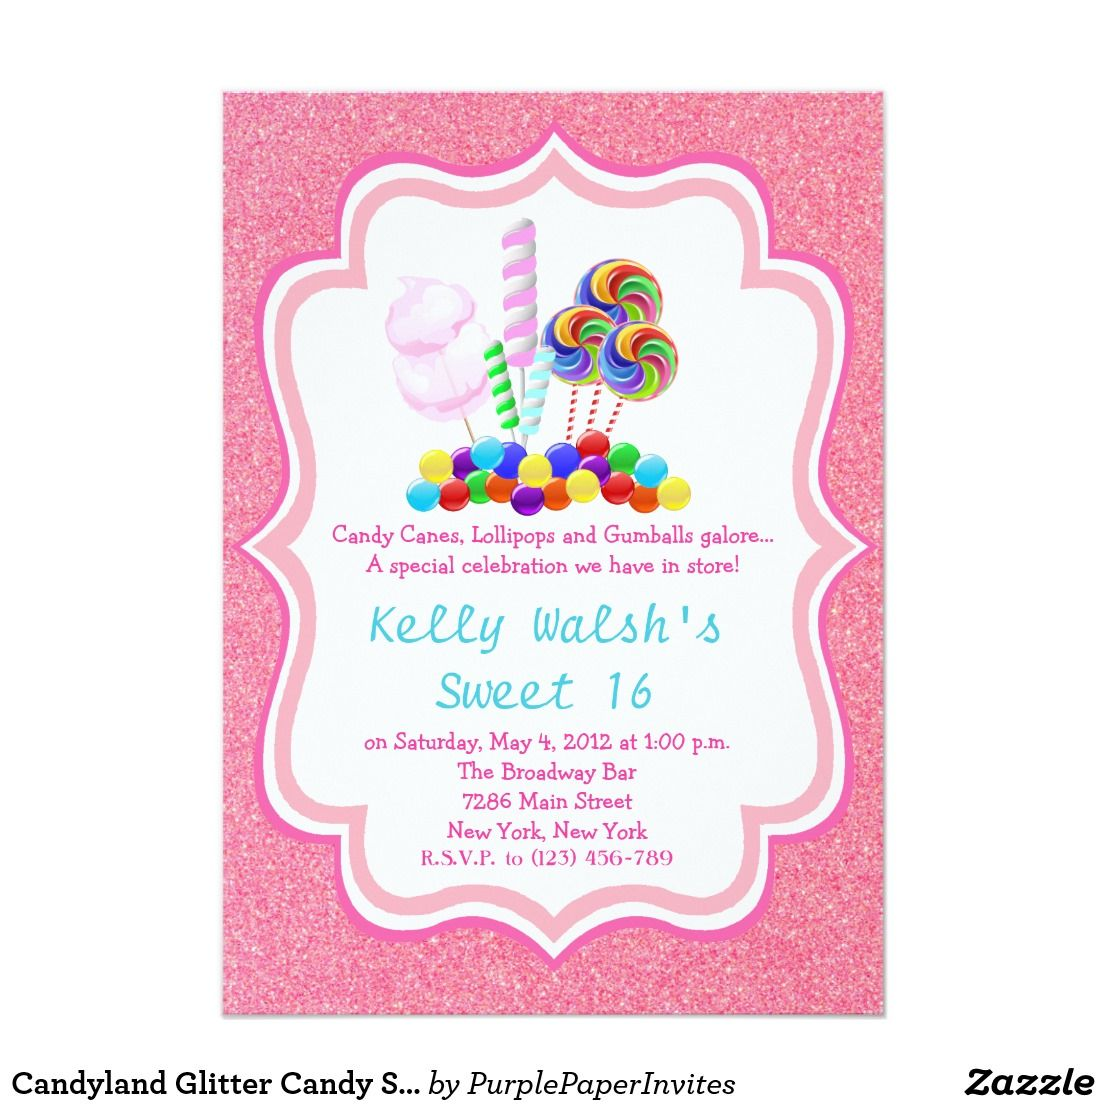 Candyland Glitter Candy Sweet 16 Invitation Candyland candy Theme ...